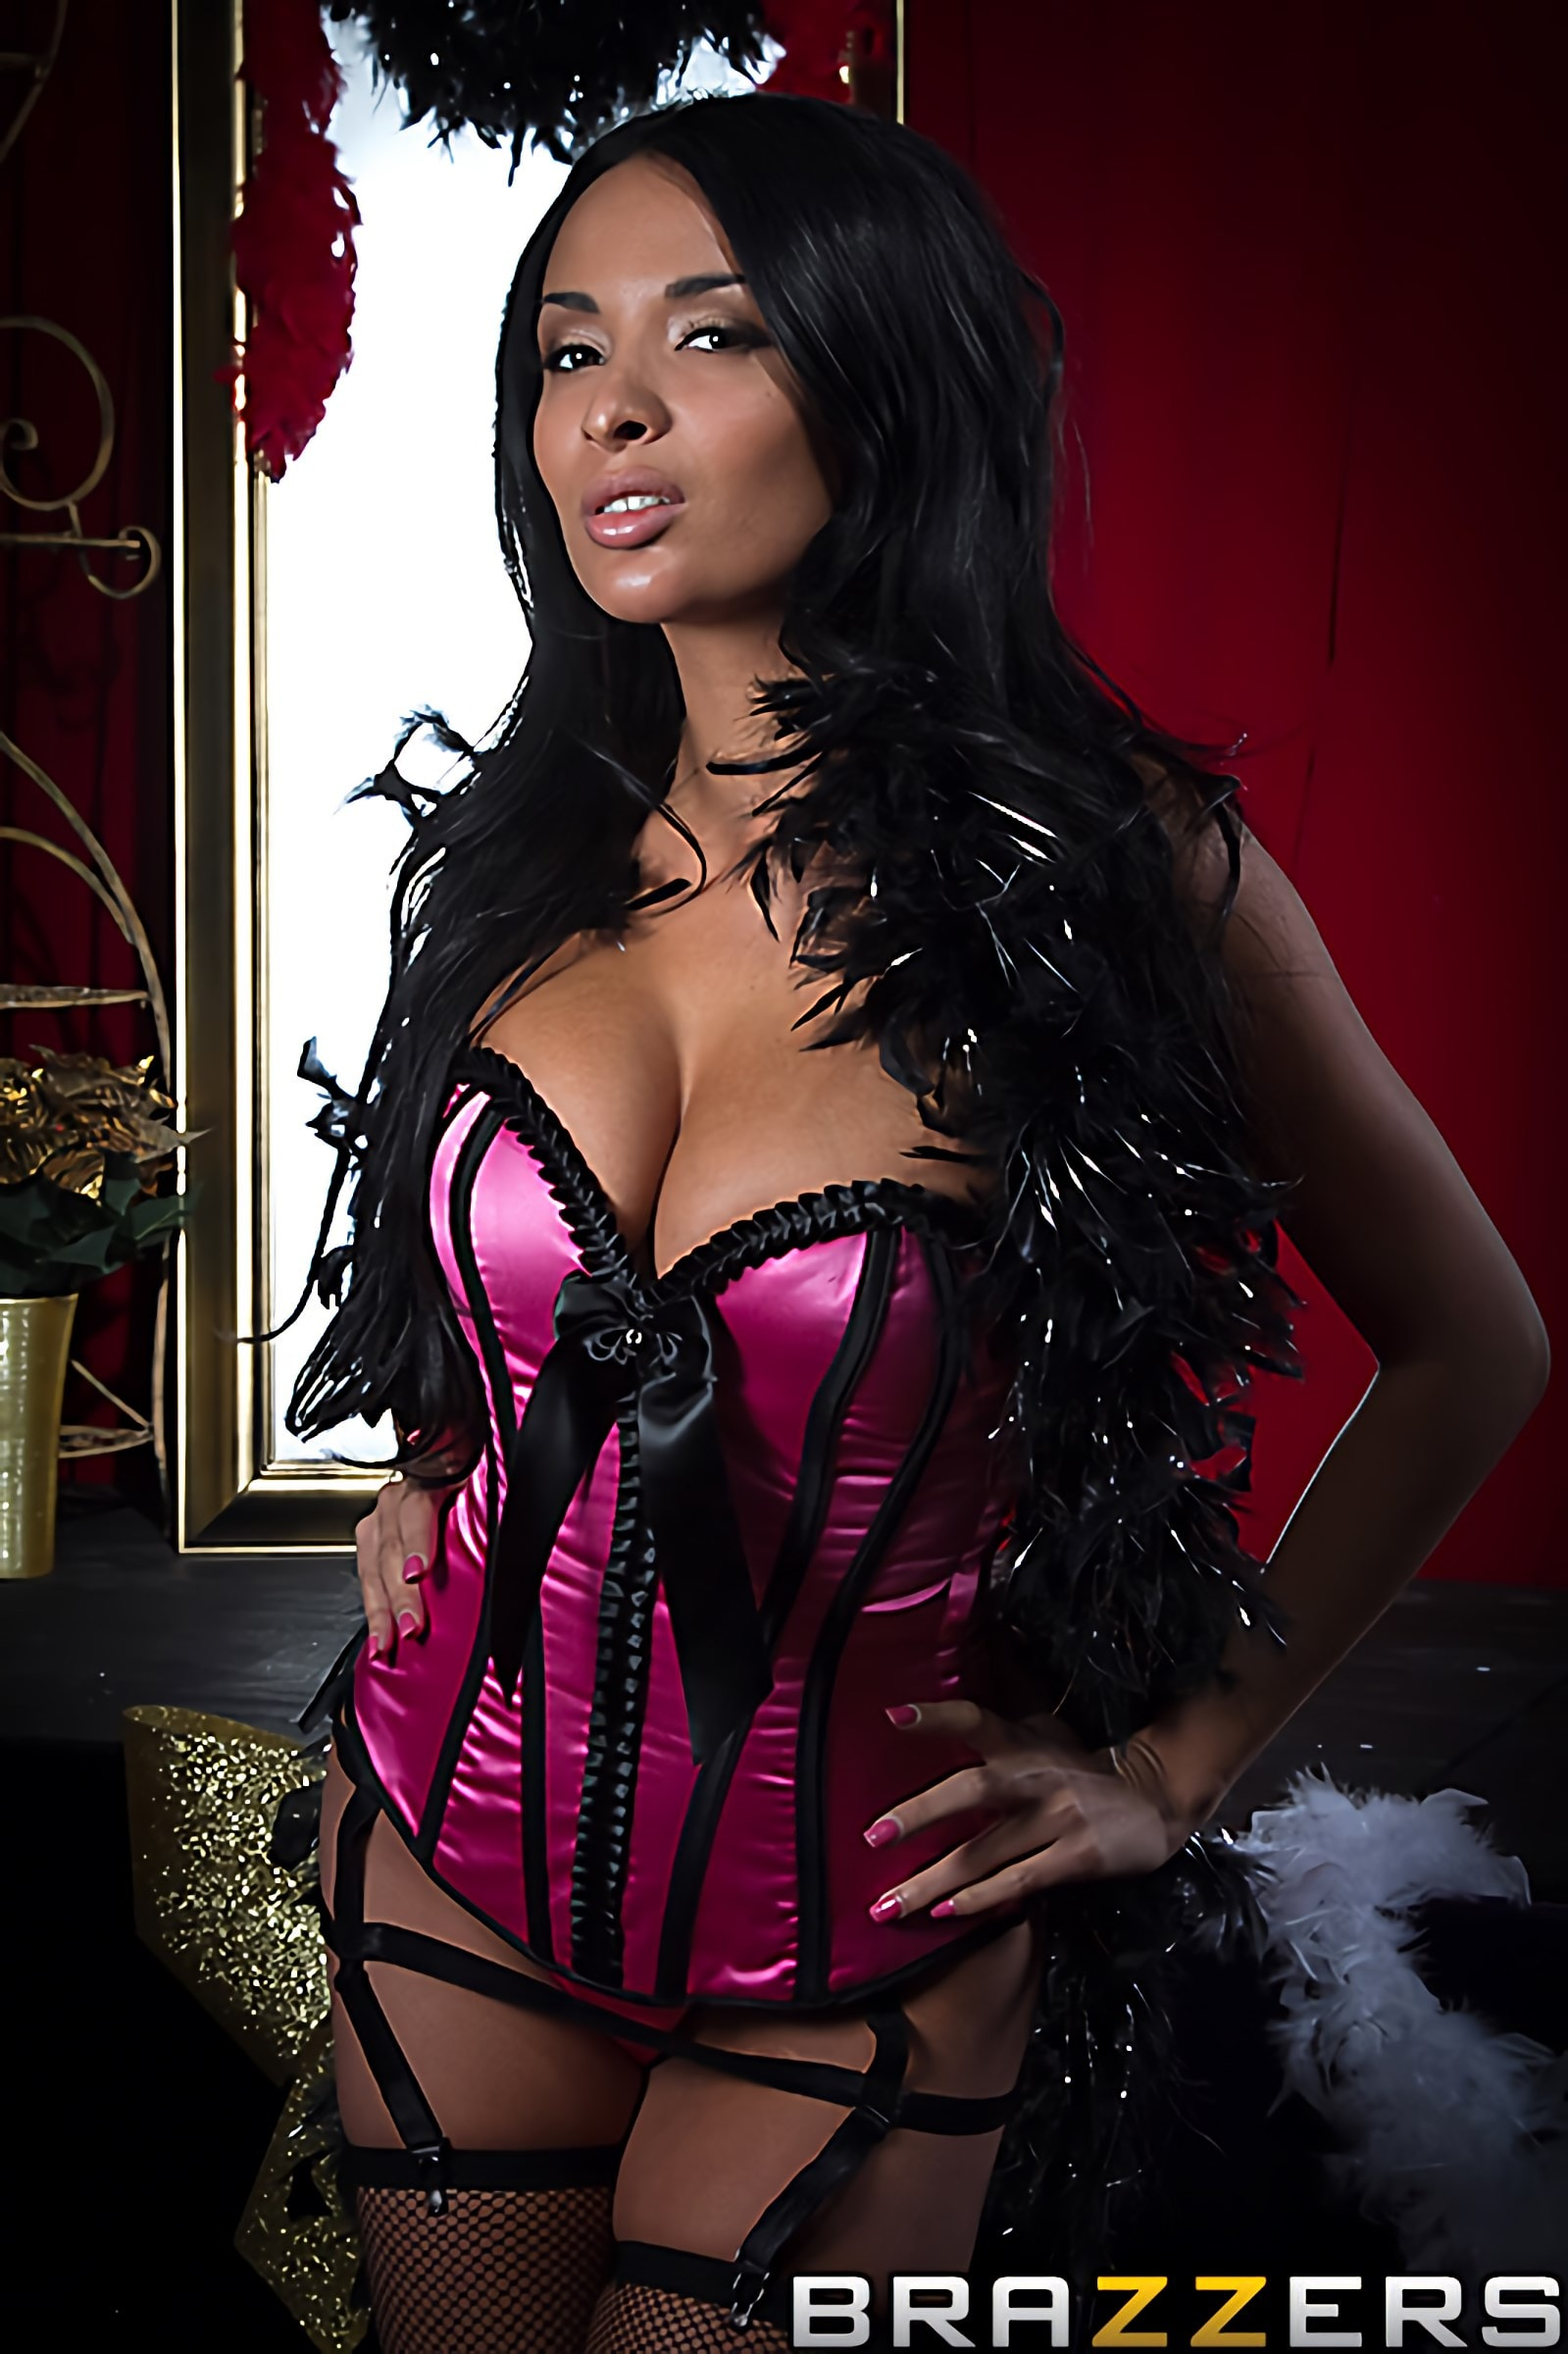 Brazzers 'Burlesque Excess' starring Anissa Kate (Photo 14)